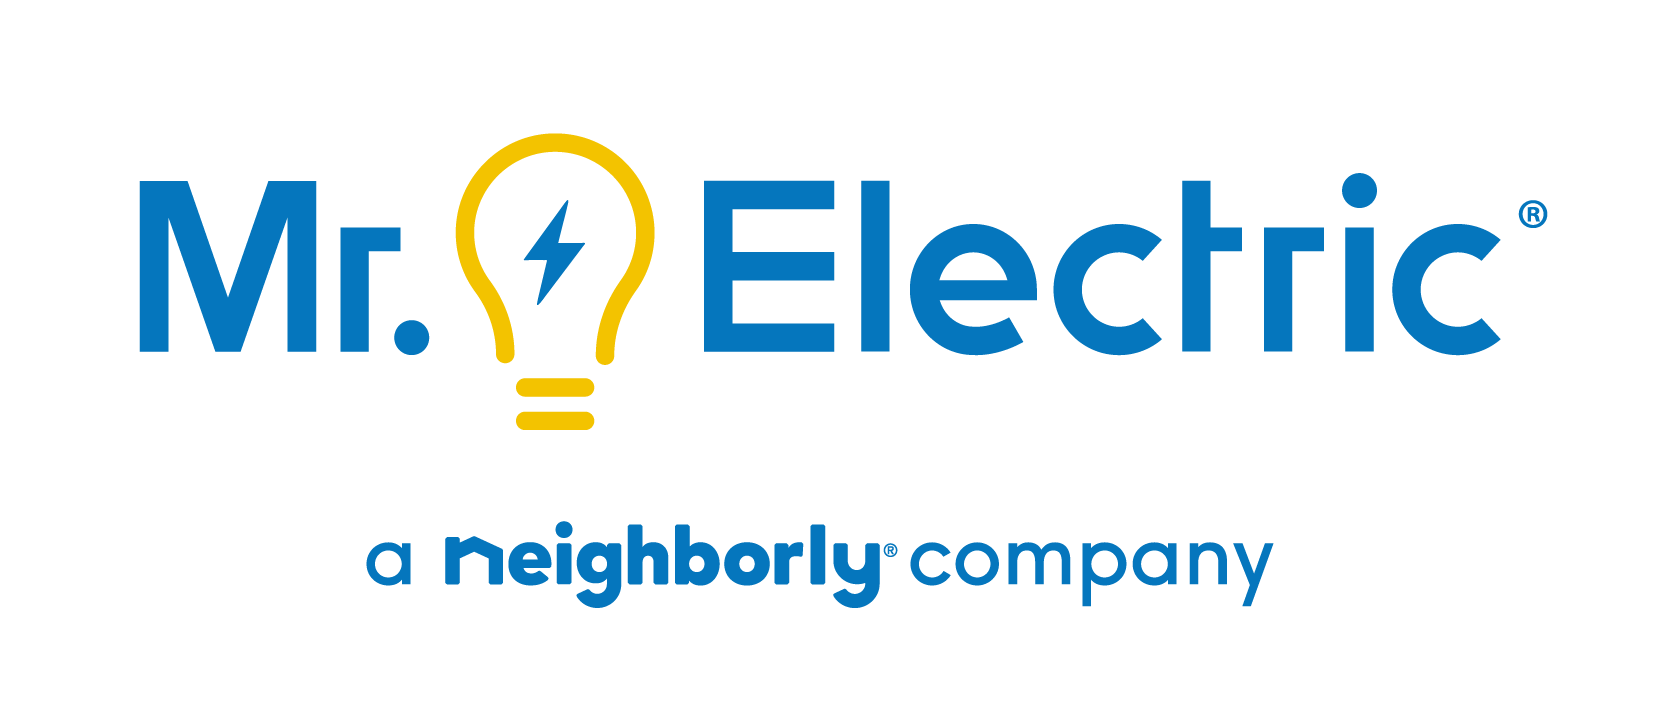 Mr. Electric of Fort Worth/Arlington/Dallas